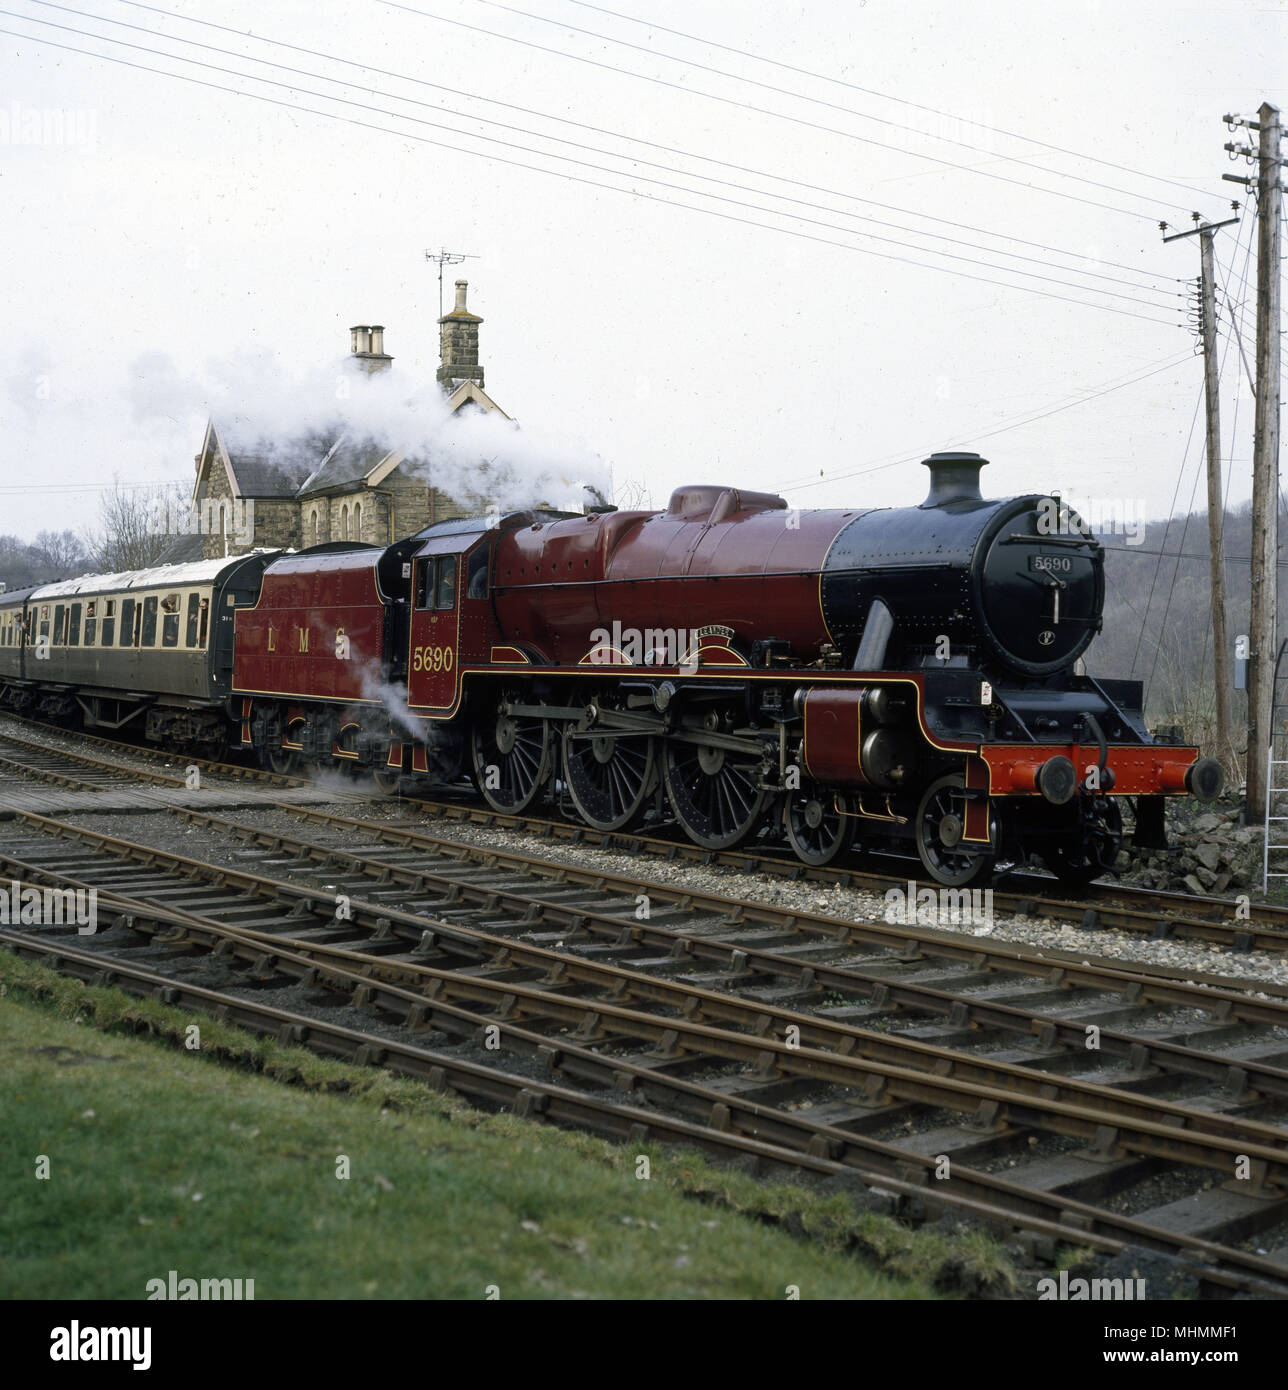 A steam locomotive engine (L.M.S. 5690 'Leander') pulling out of Highley Station (going to Bewdley), Severn Valley Railway, England.      Date: 1982 - Stock Image